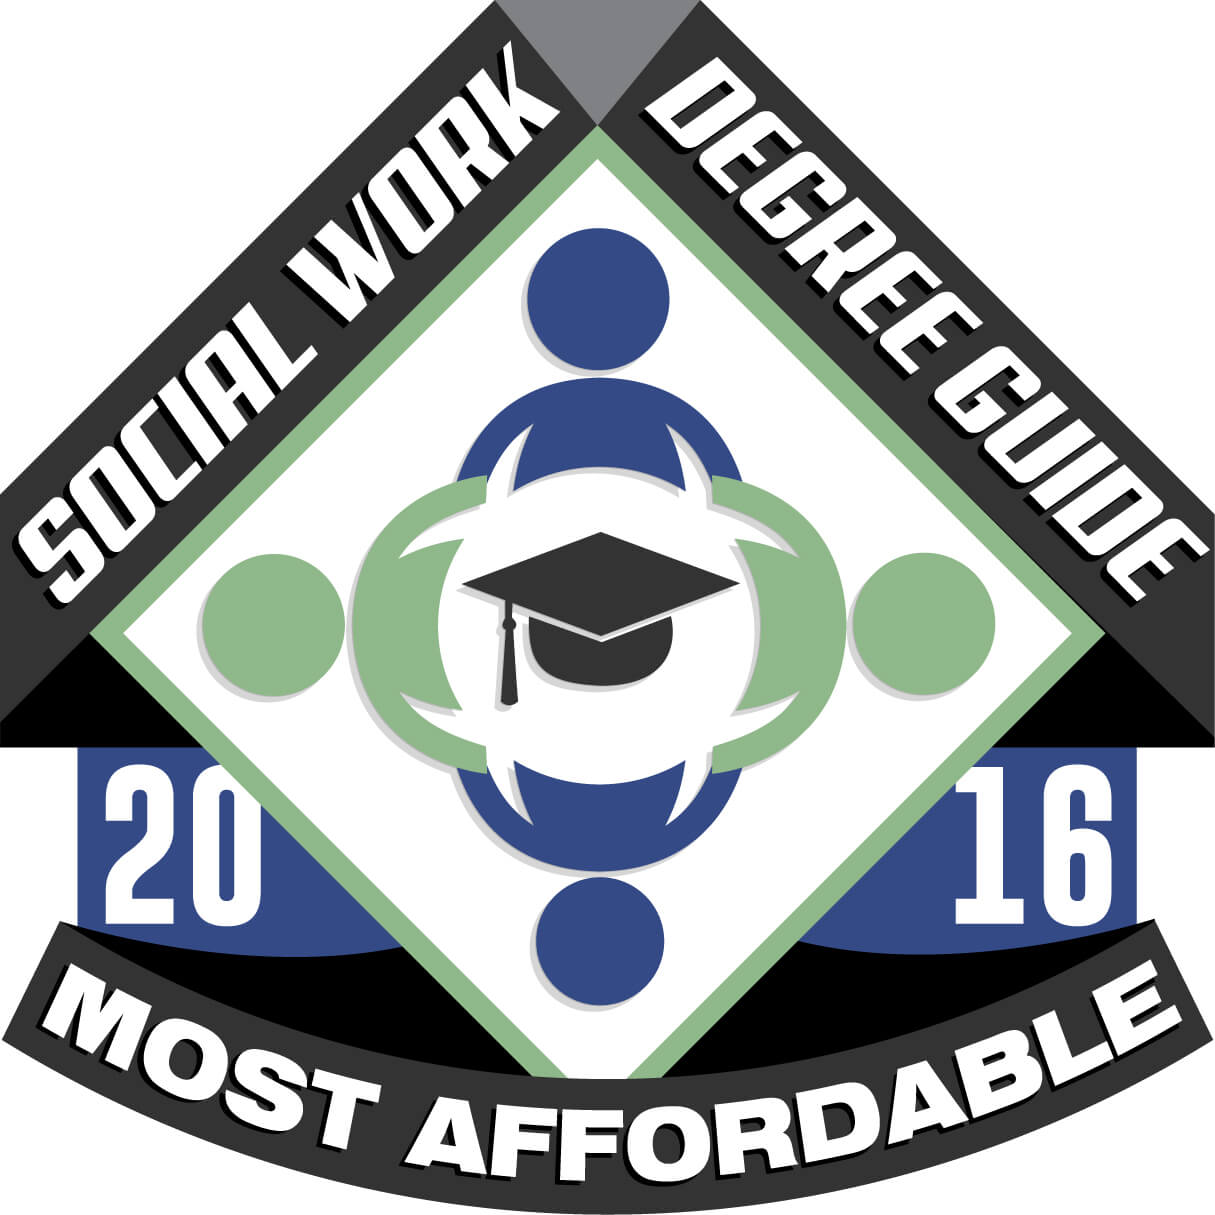 36 Most Affordable Accredited Msw Programs In The South East 2018